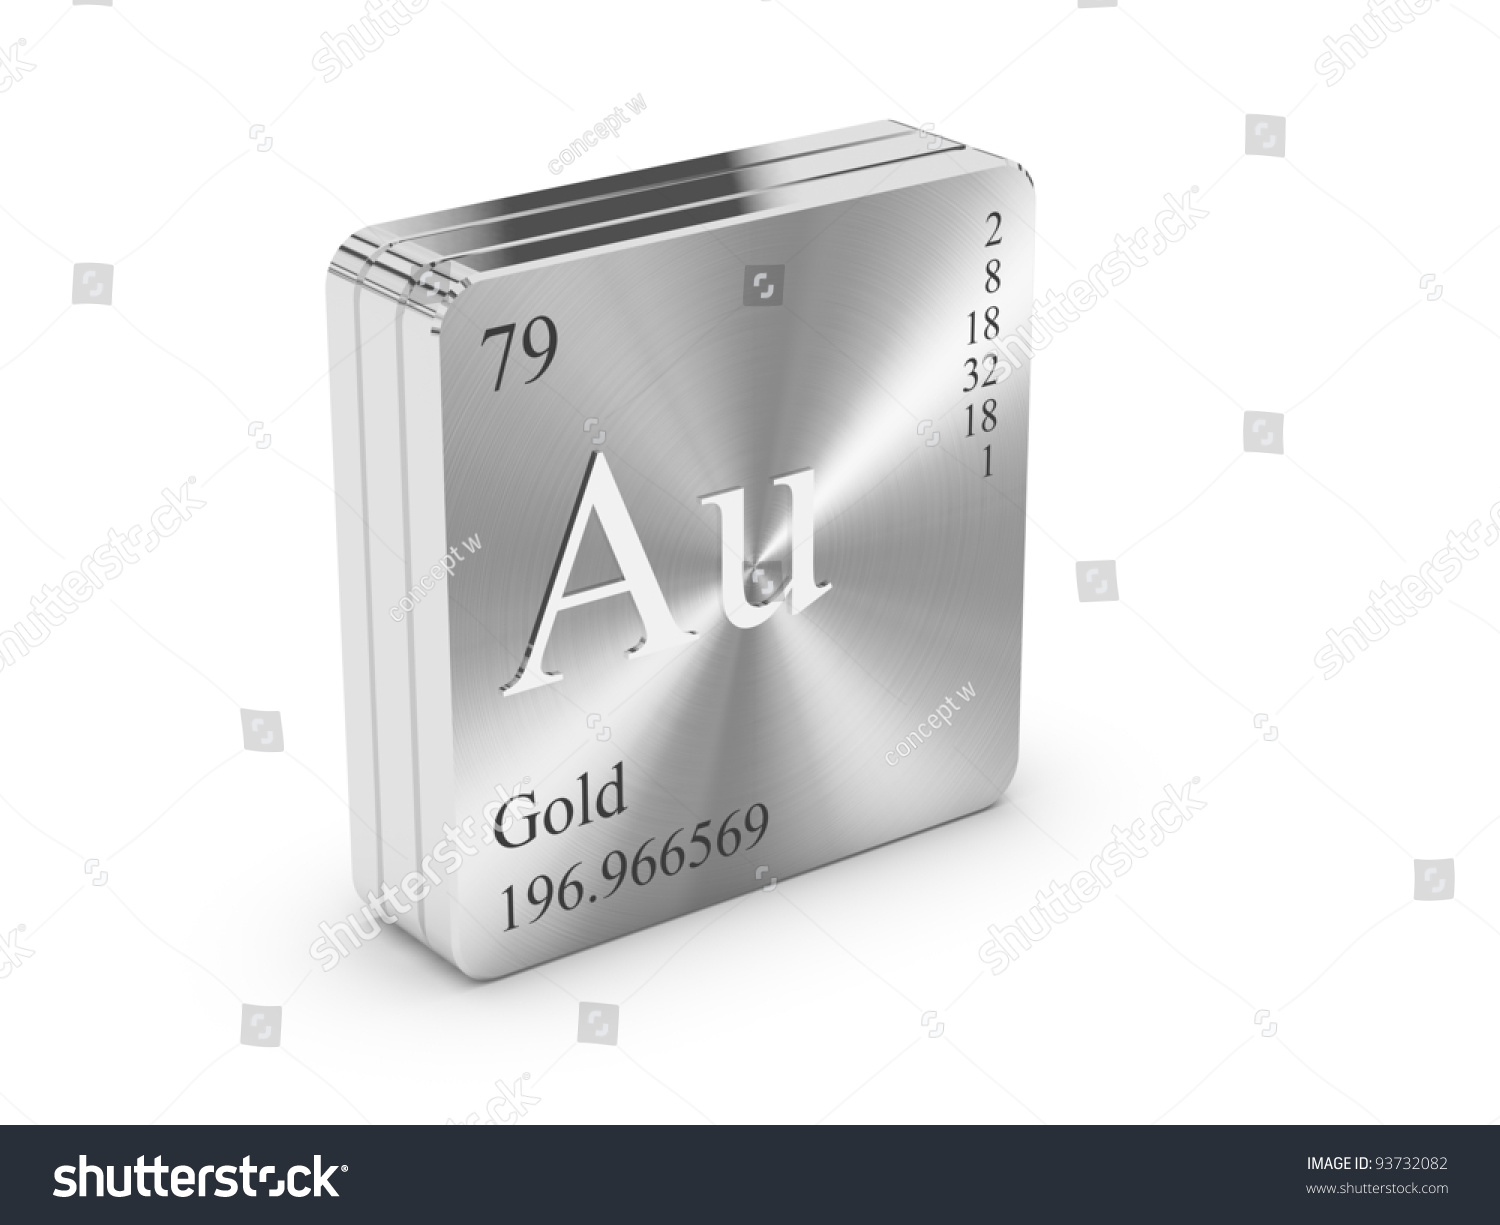 What is the symbol for gold in the periodic table images what is the symbol for gold in the periodic table images what is the symbol for gamestrikefo Gallery